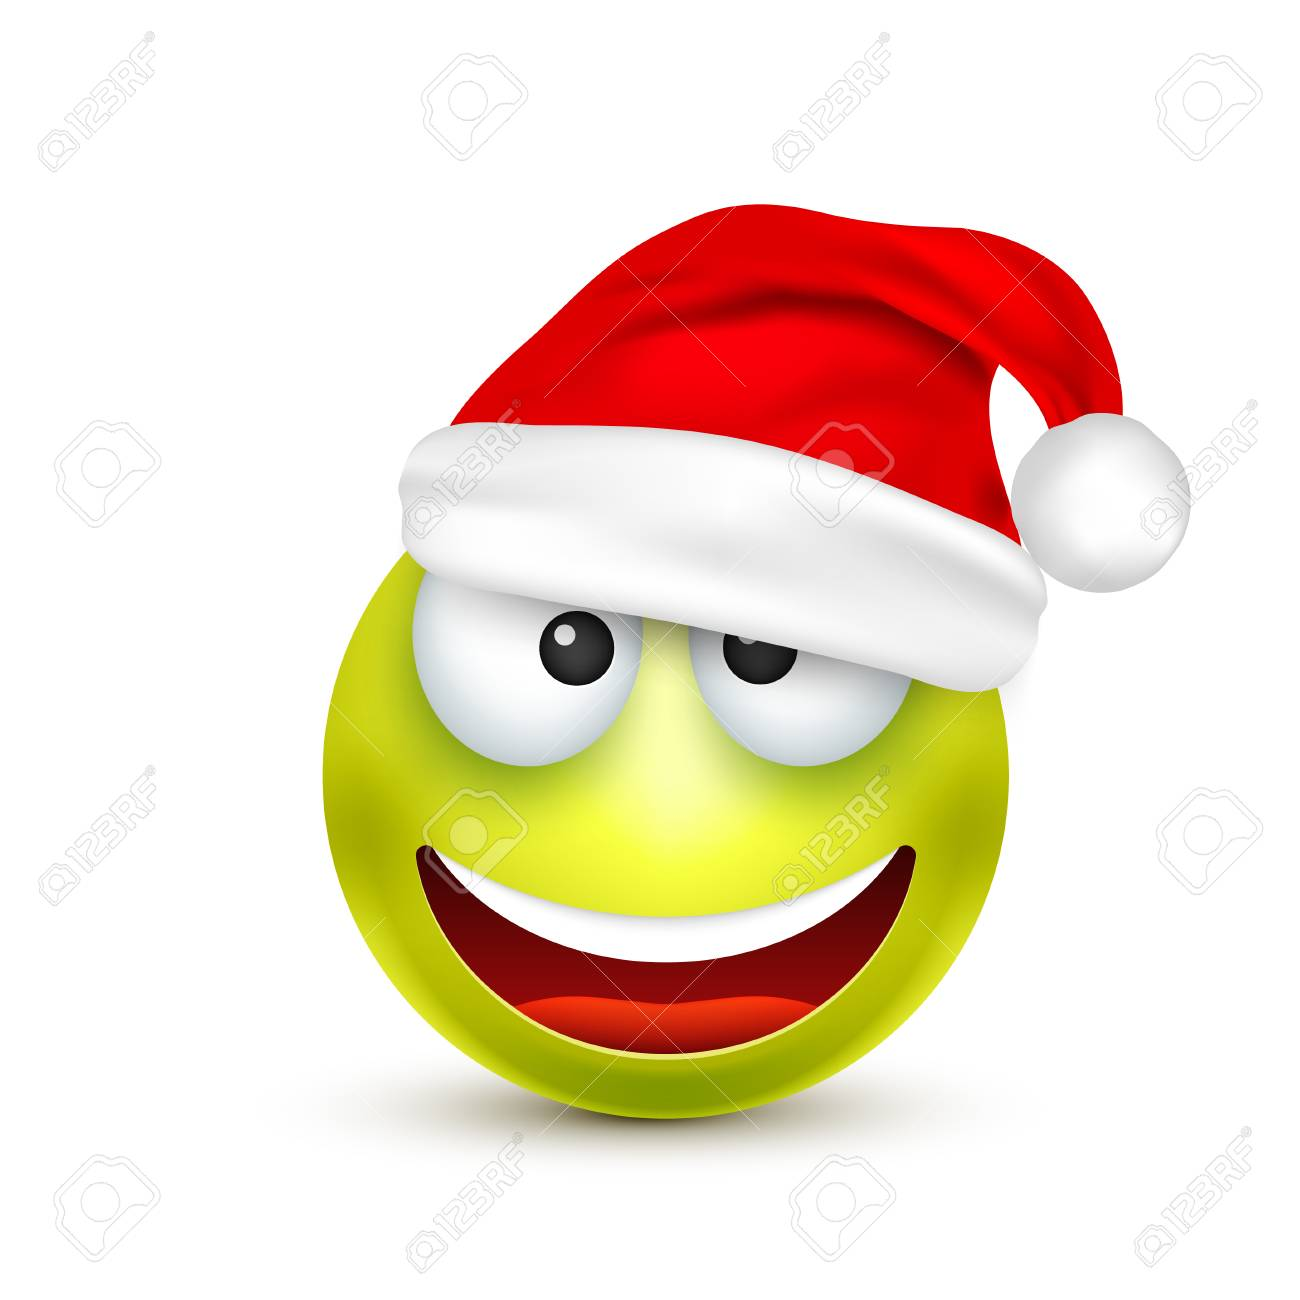 Smiley,emoticon. Green Emoji, Face With Emotions And Christmas.. Royalty  Free Cliparts, Vectors, And Stock Illustration. Image 91688084.